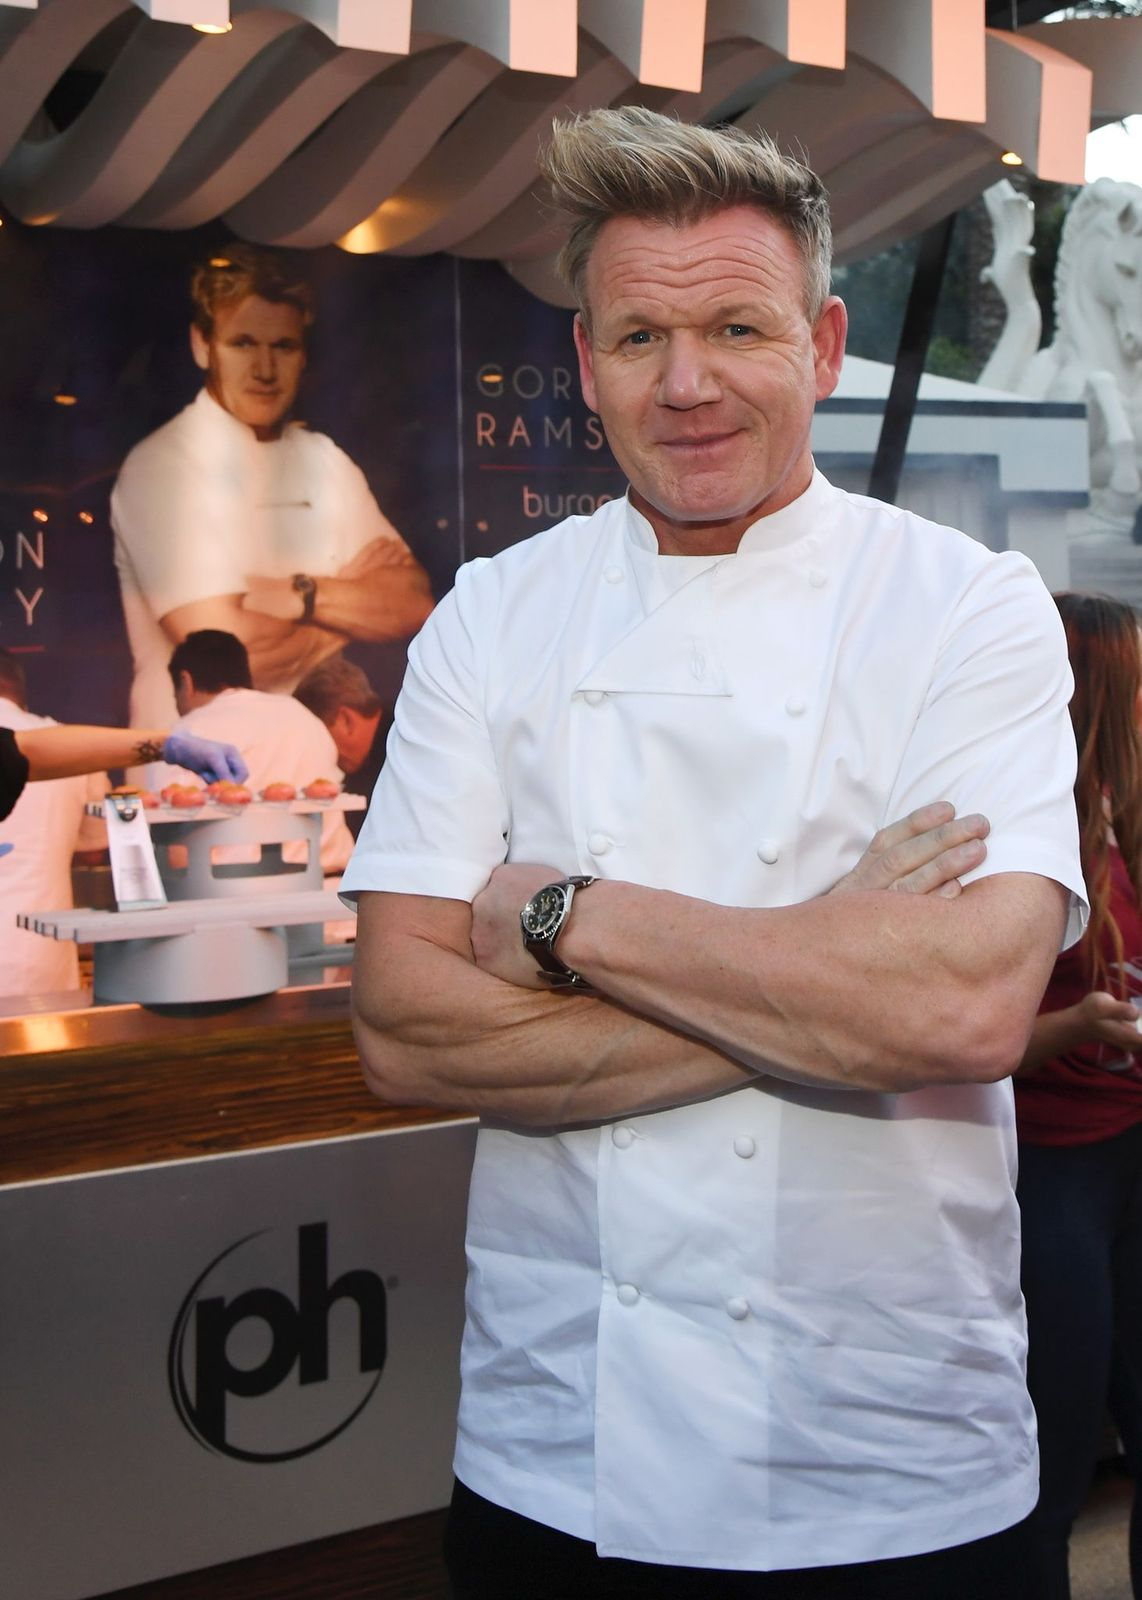 Chef Gordon Ramsay at the 12th annual Vegas Uncork'd by Bon Appetit Grand Tasting event at Caesars Palace in Las Vegas, Nevada   Photo: Ethan Miller/Getty Images for Vegas Uncork'd by Bon Appetit